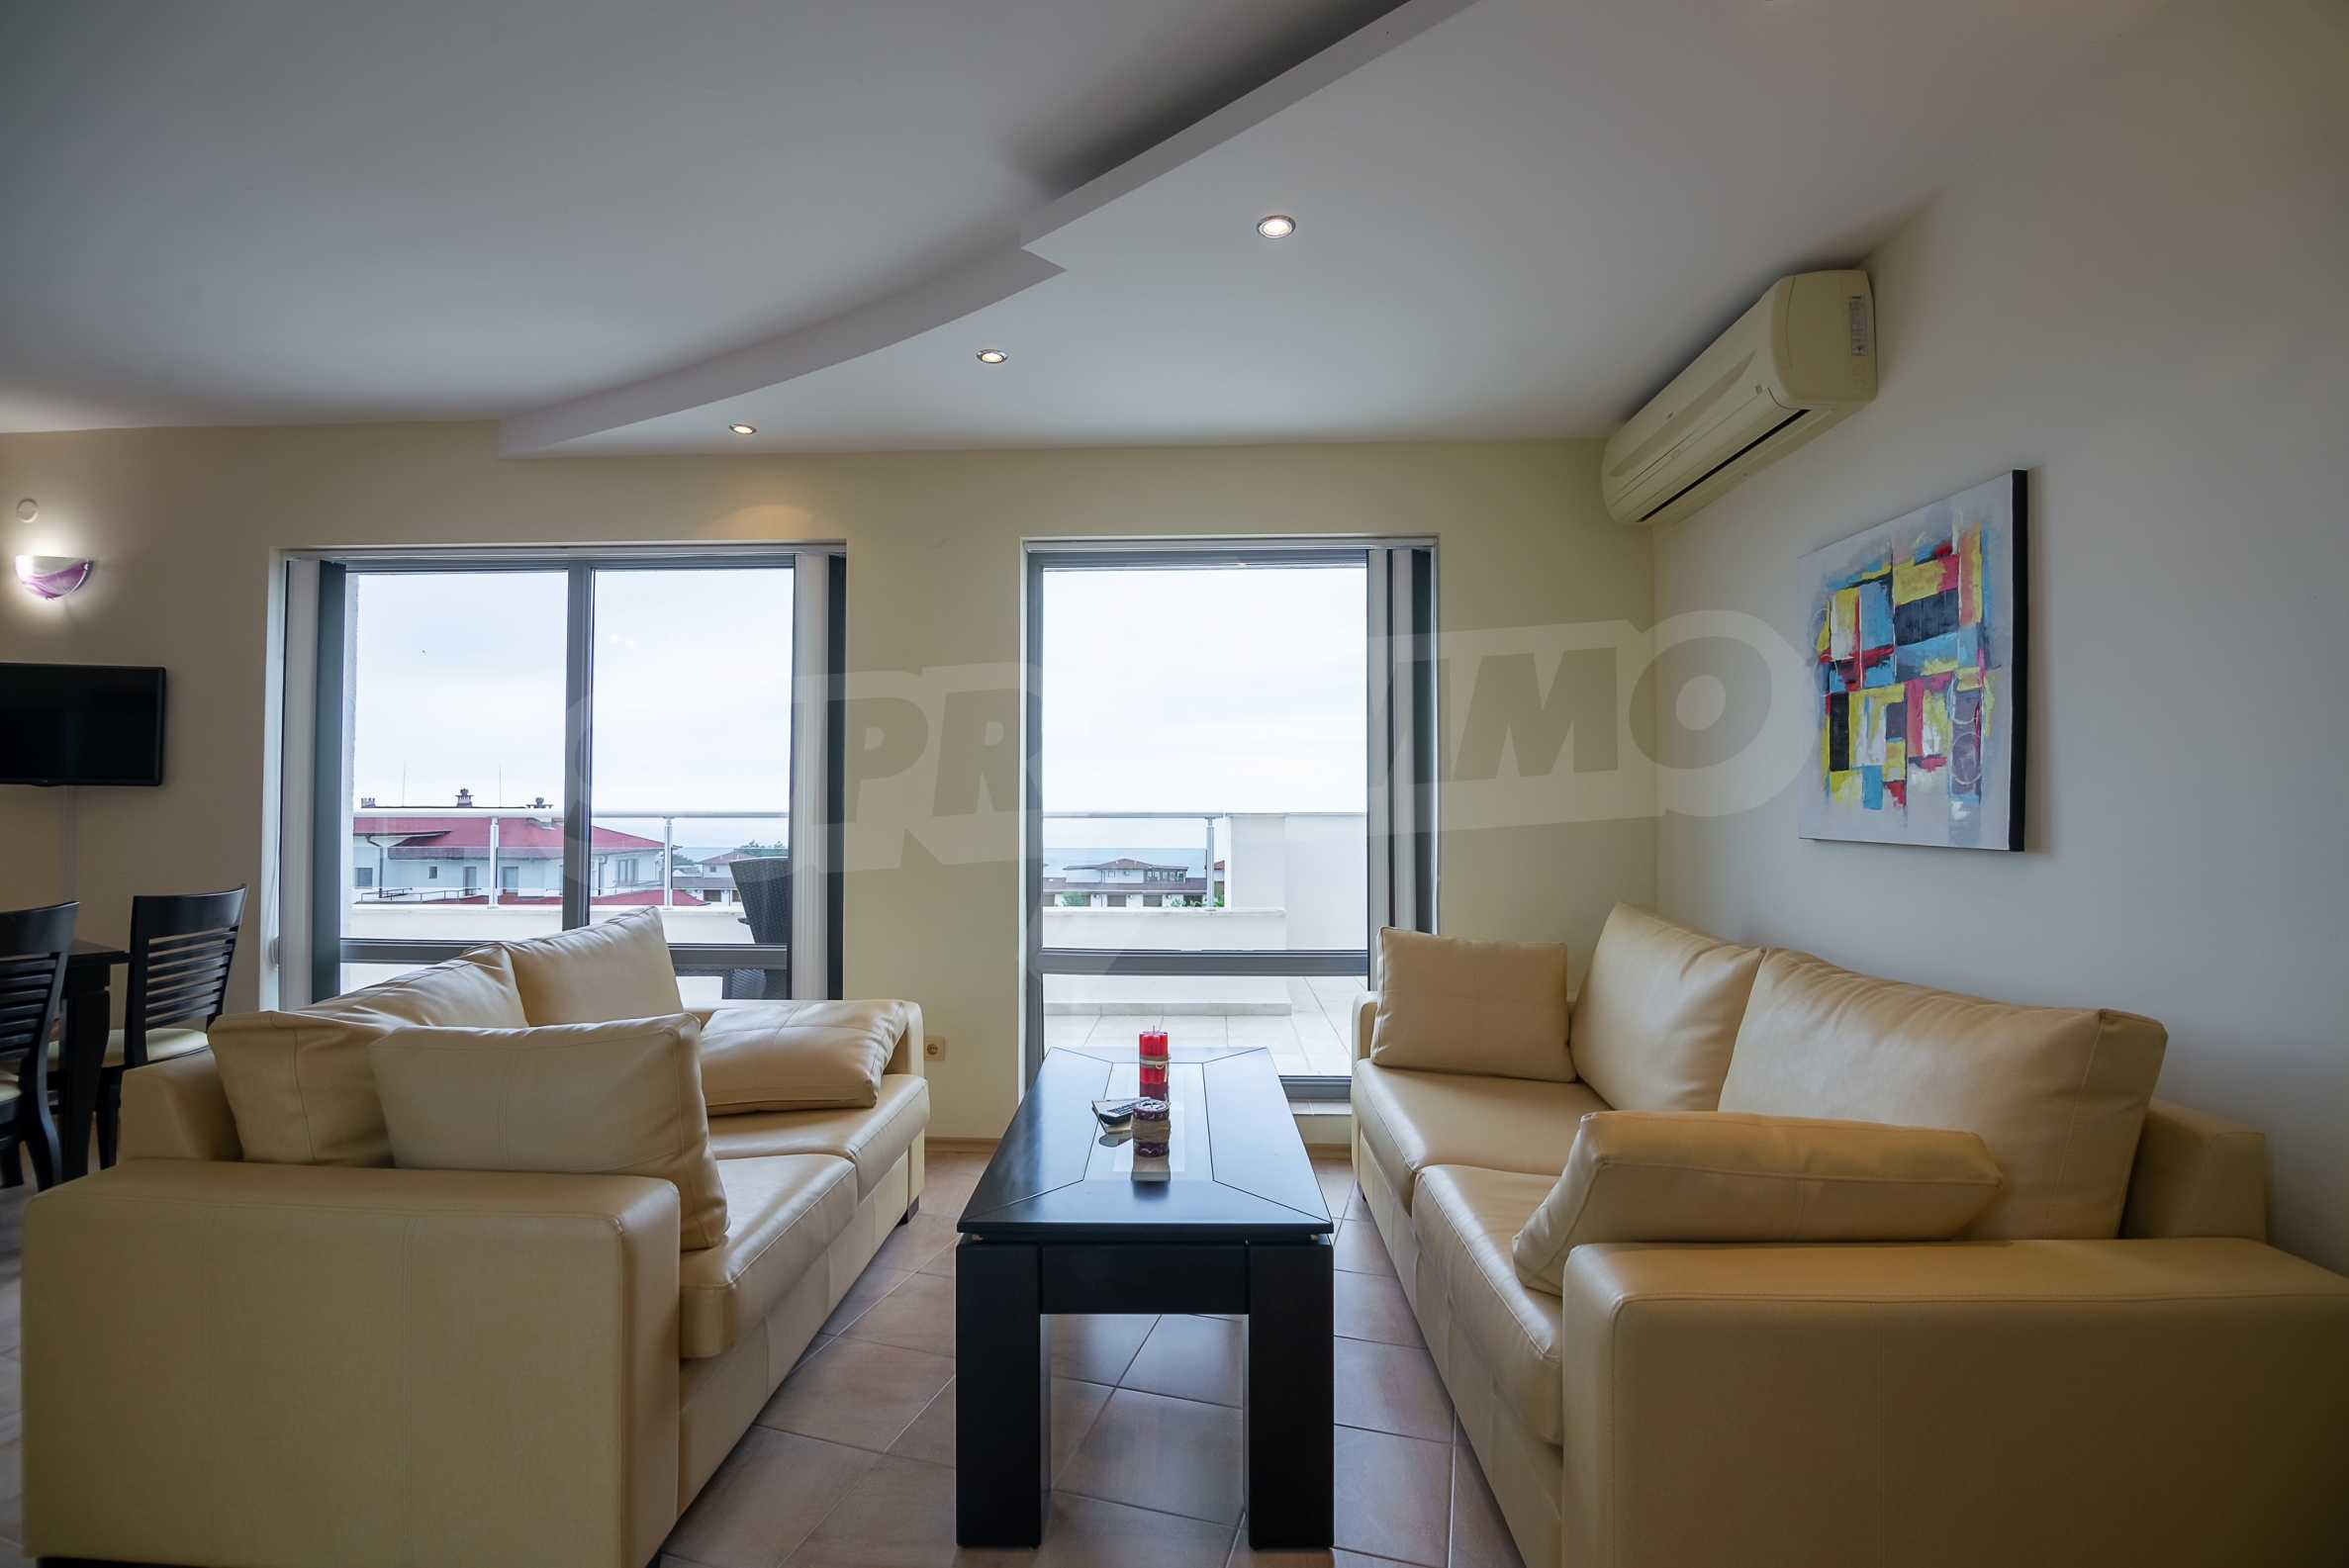 Penthouse Panorama - two-bedroom property overlooking the sea and the port 2